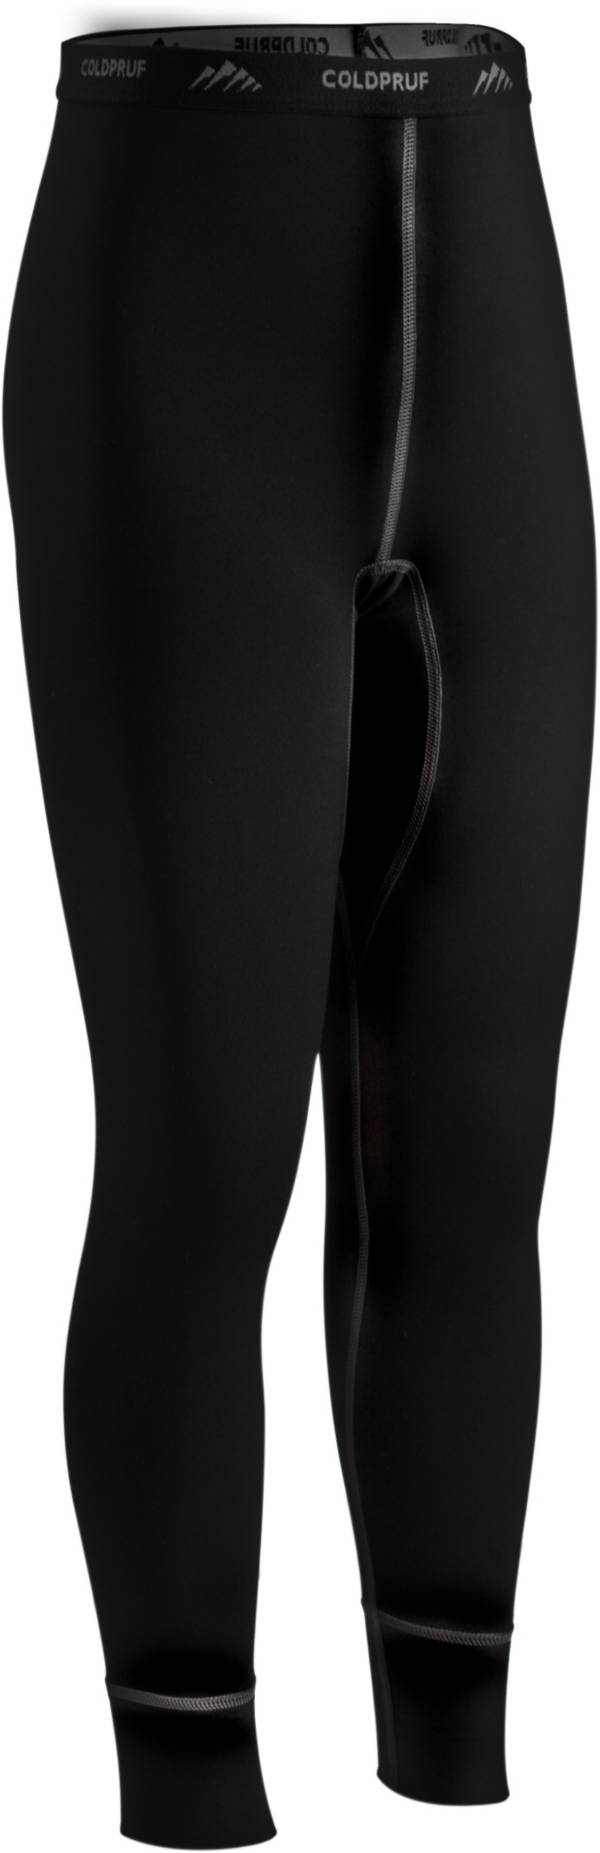 ColdPruf Kids' Quest Performance Base Layer Leggings product image